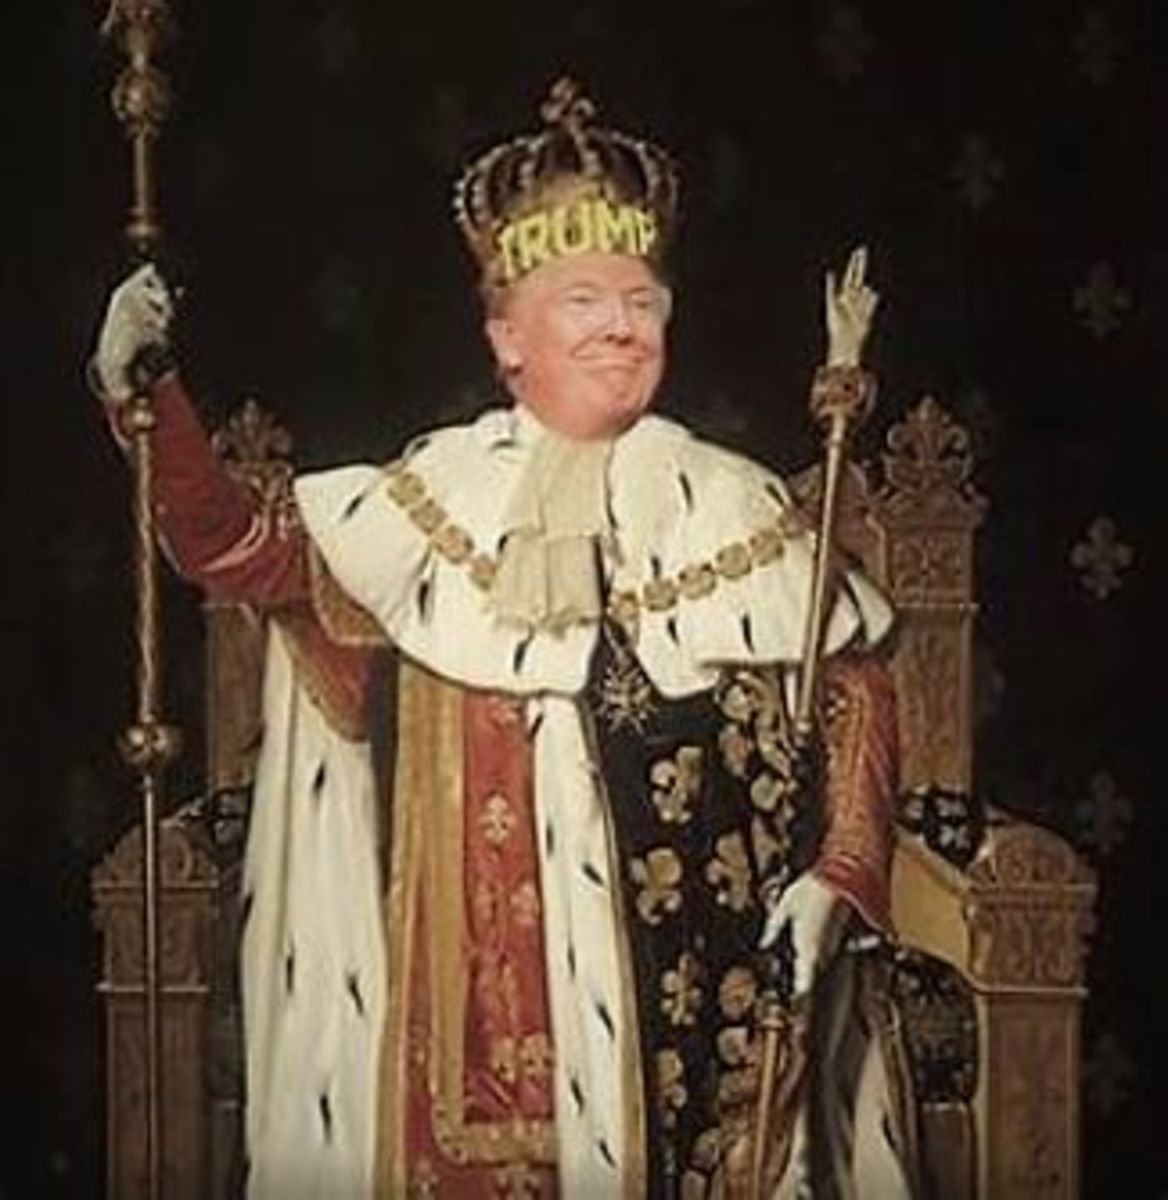 Trump the President who wants to be king